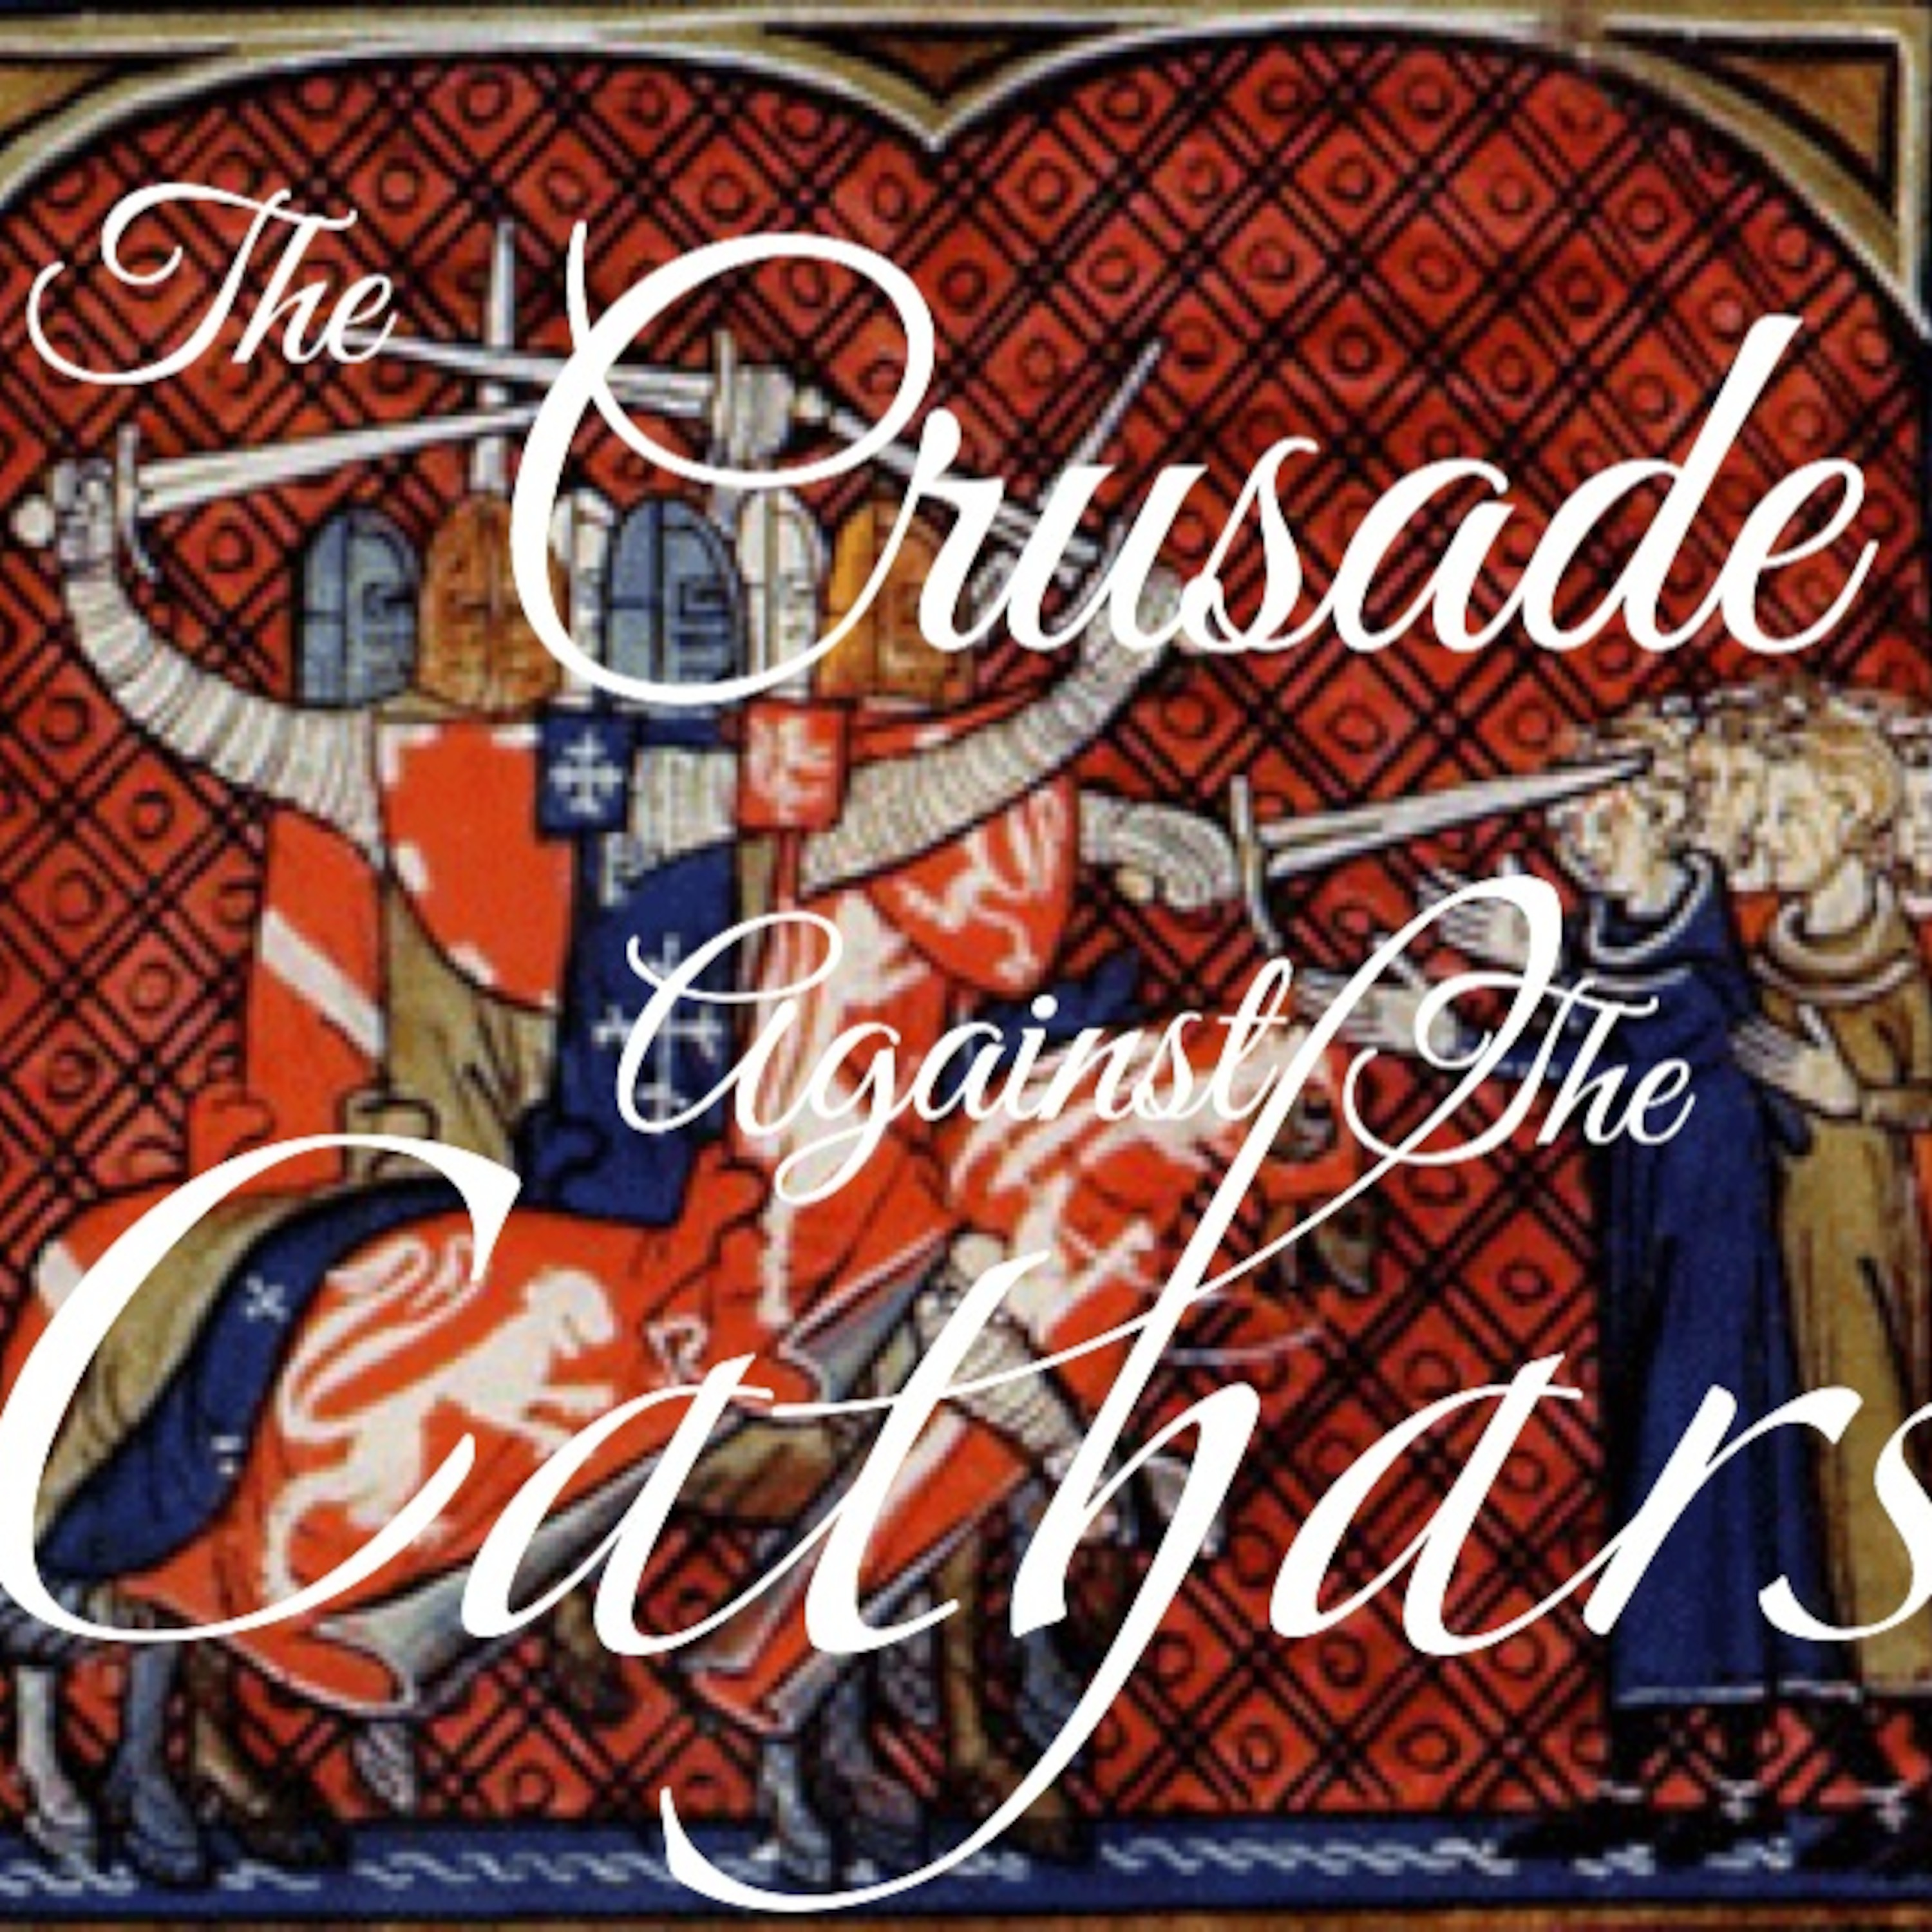 Episode 133 - The Crusade against the Cathars